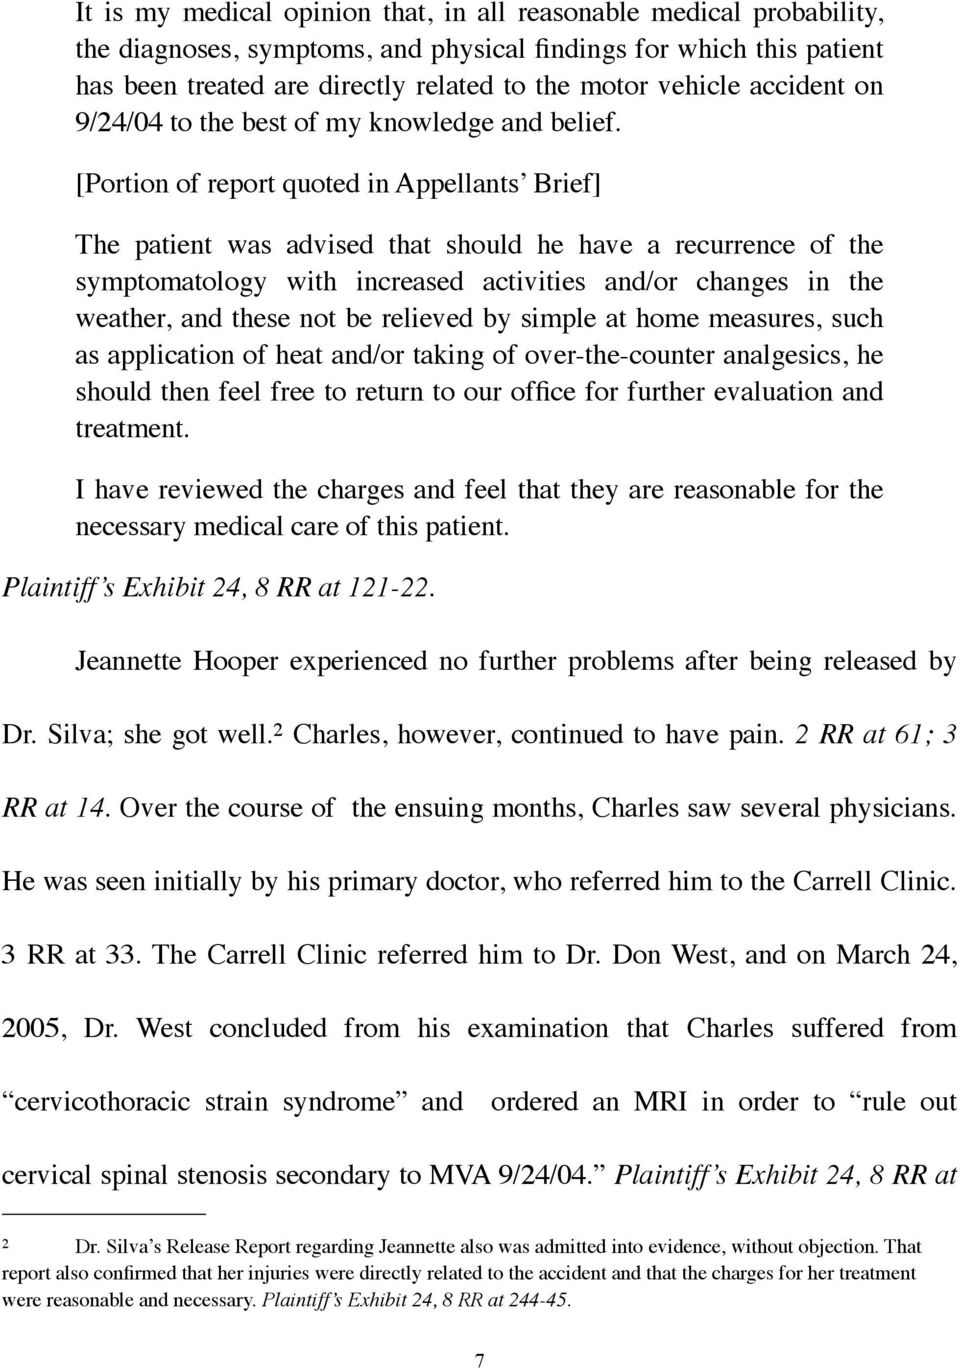 [Portion of report quoted in Appellants Brief] The patient was advised that should he have a recurrence of the symptomatology with increased activities and/or changes in the weather, and these not be